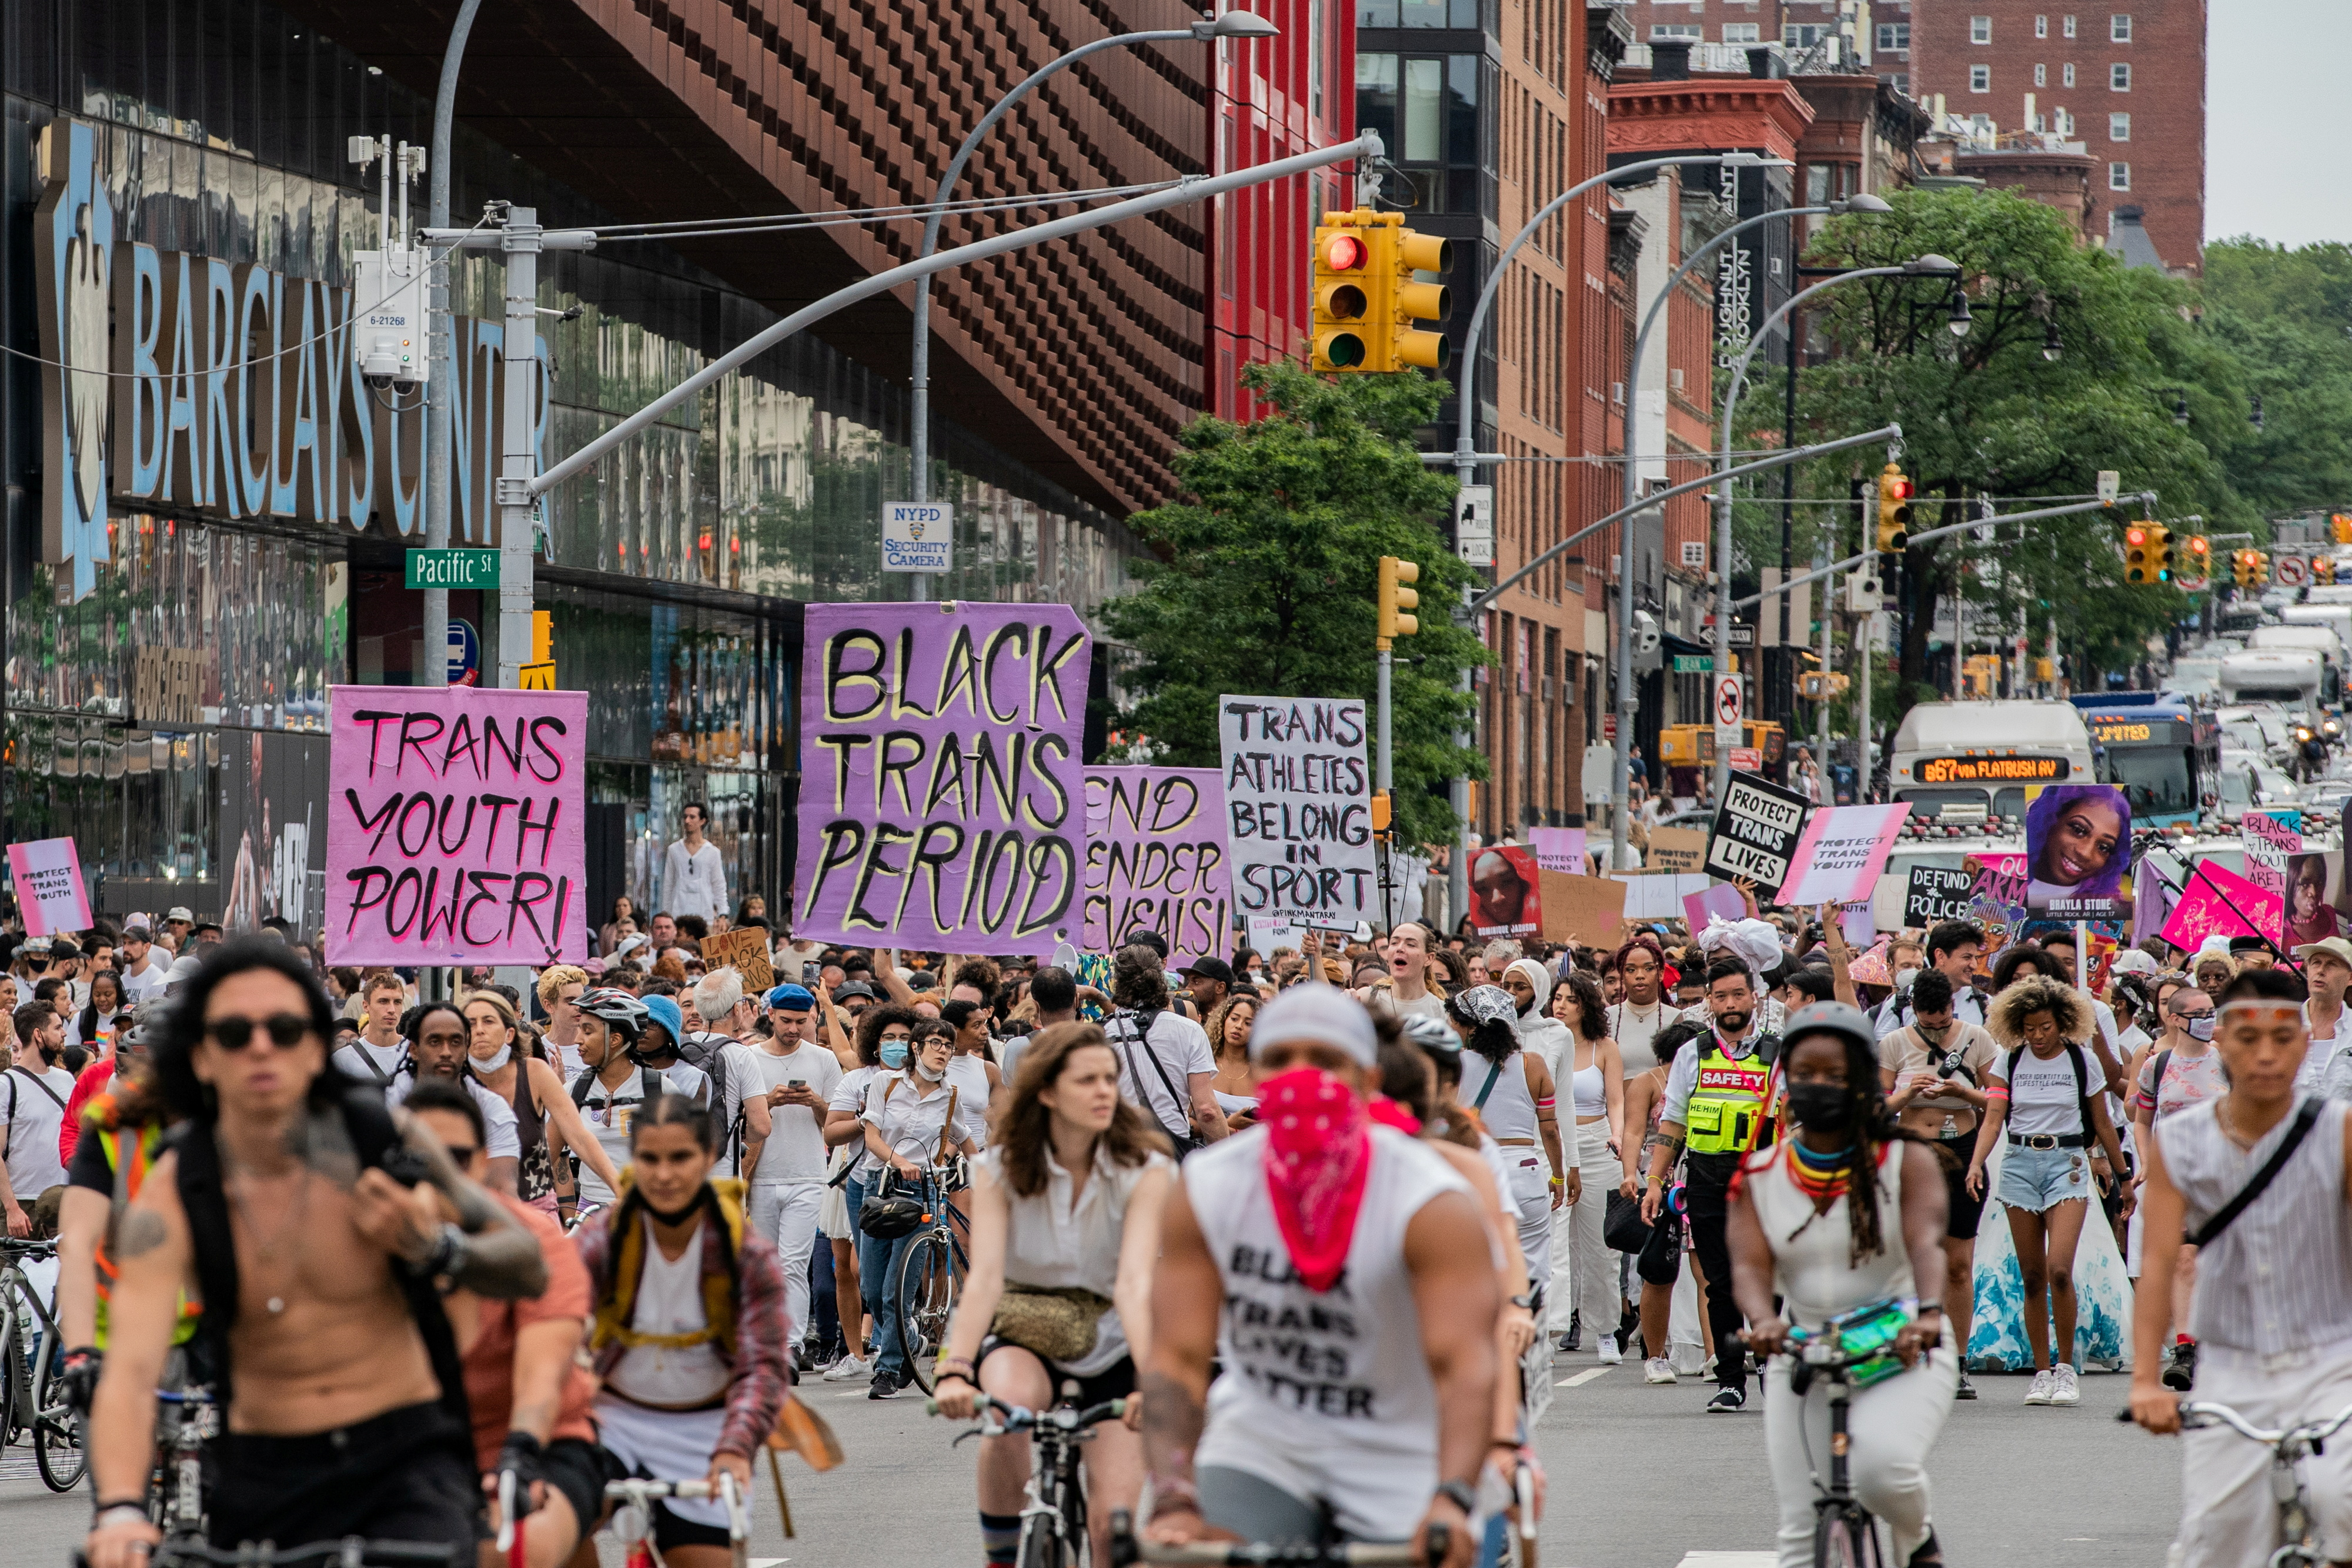 People march during the Brooklyn Liberation's Protect Trans Youth event in the Brooklyn borough of New York City, U.S., June 13, 2021. REUTERS/Jeenah Moon